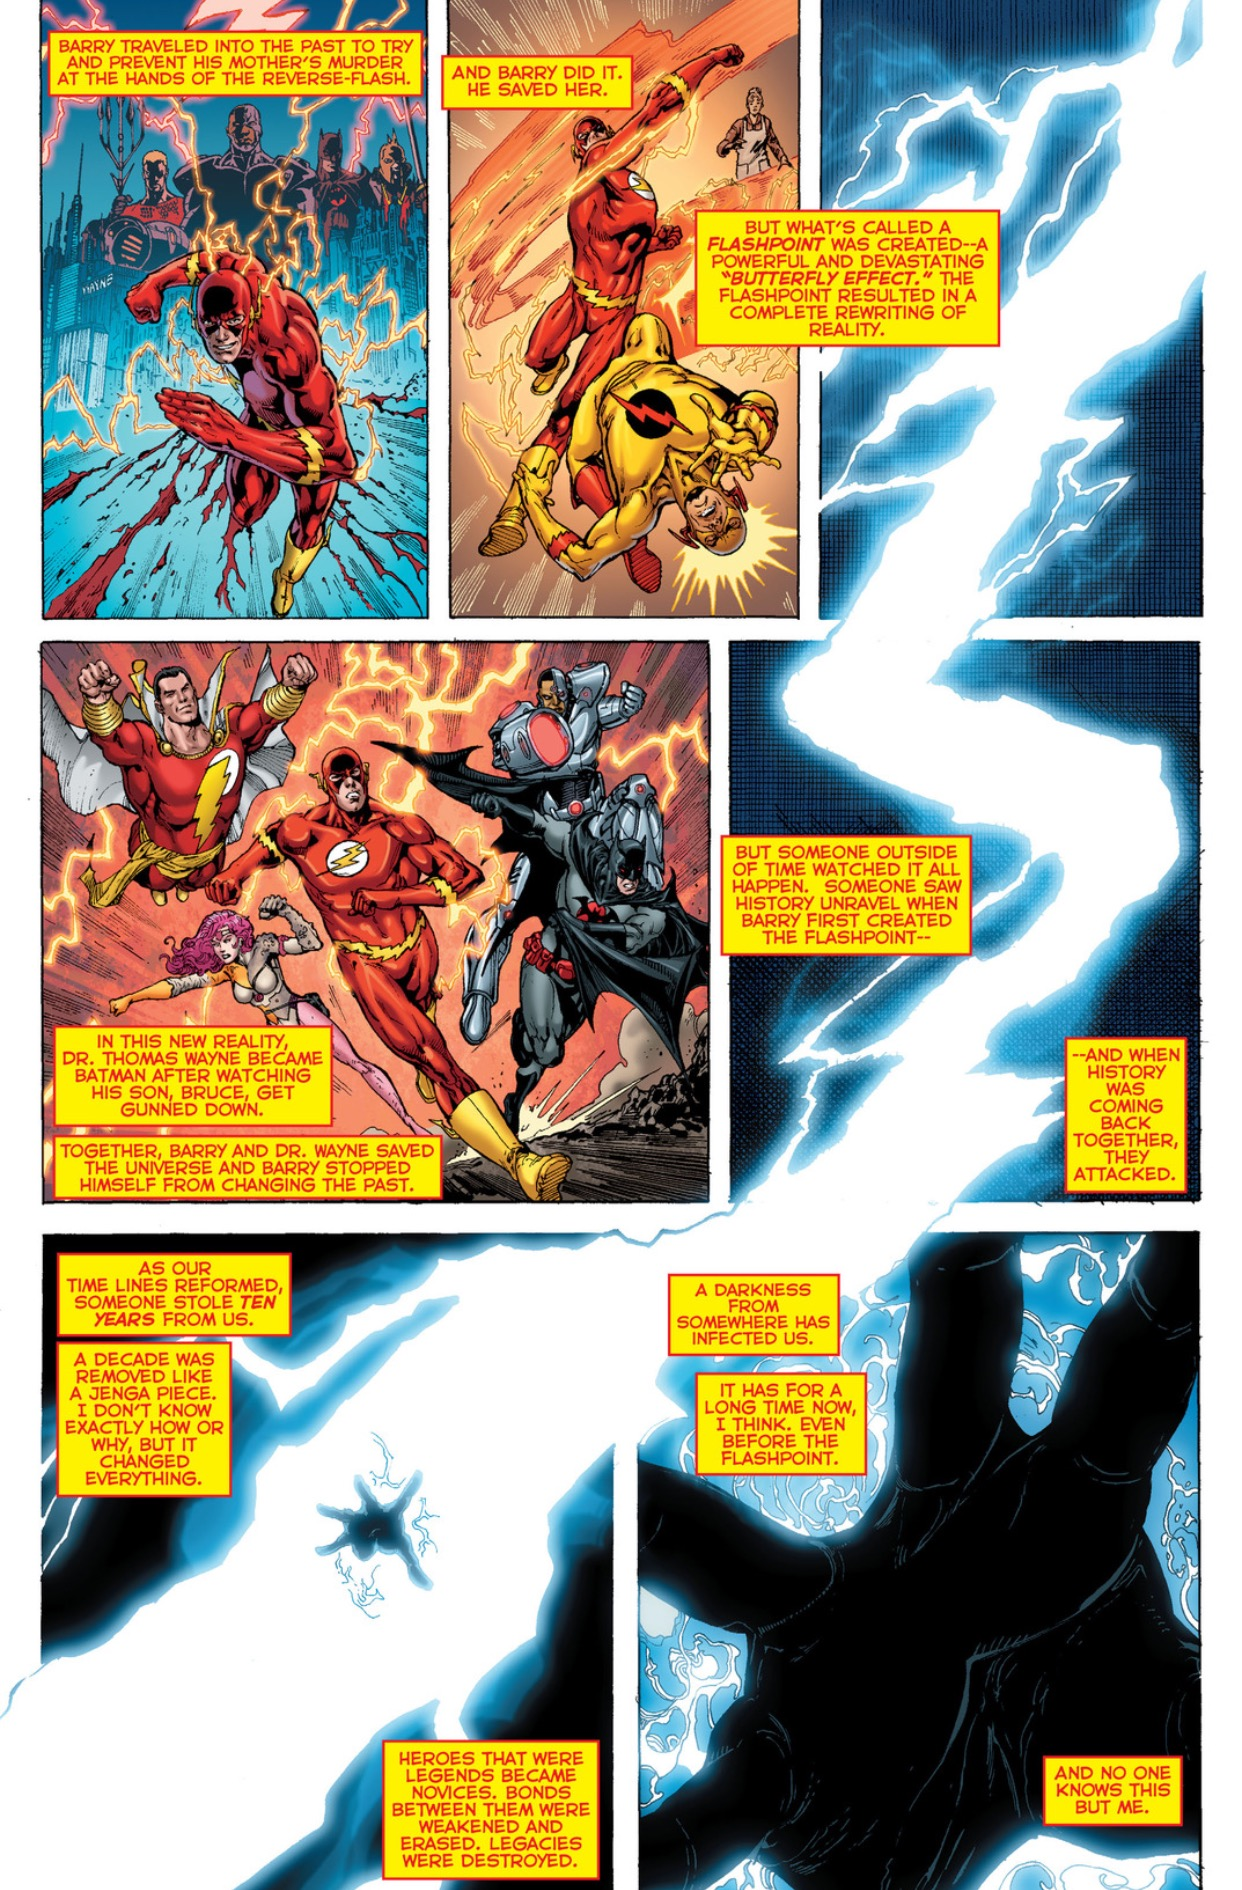 DC Rebirth Wally West travels back in time